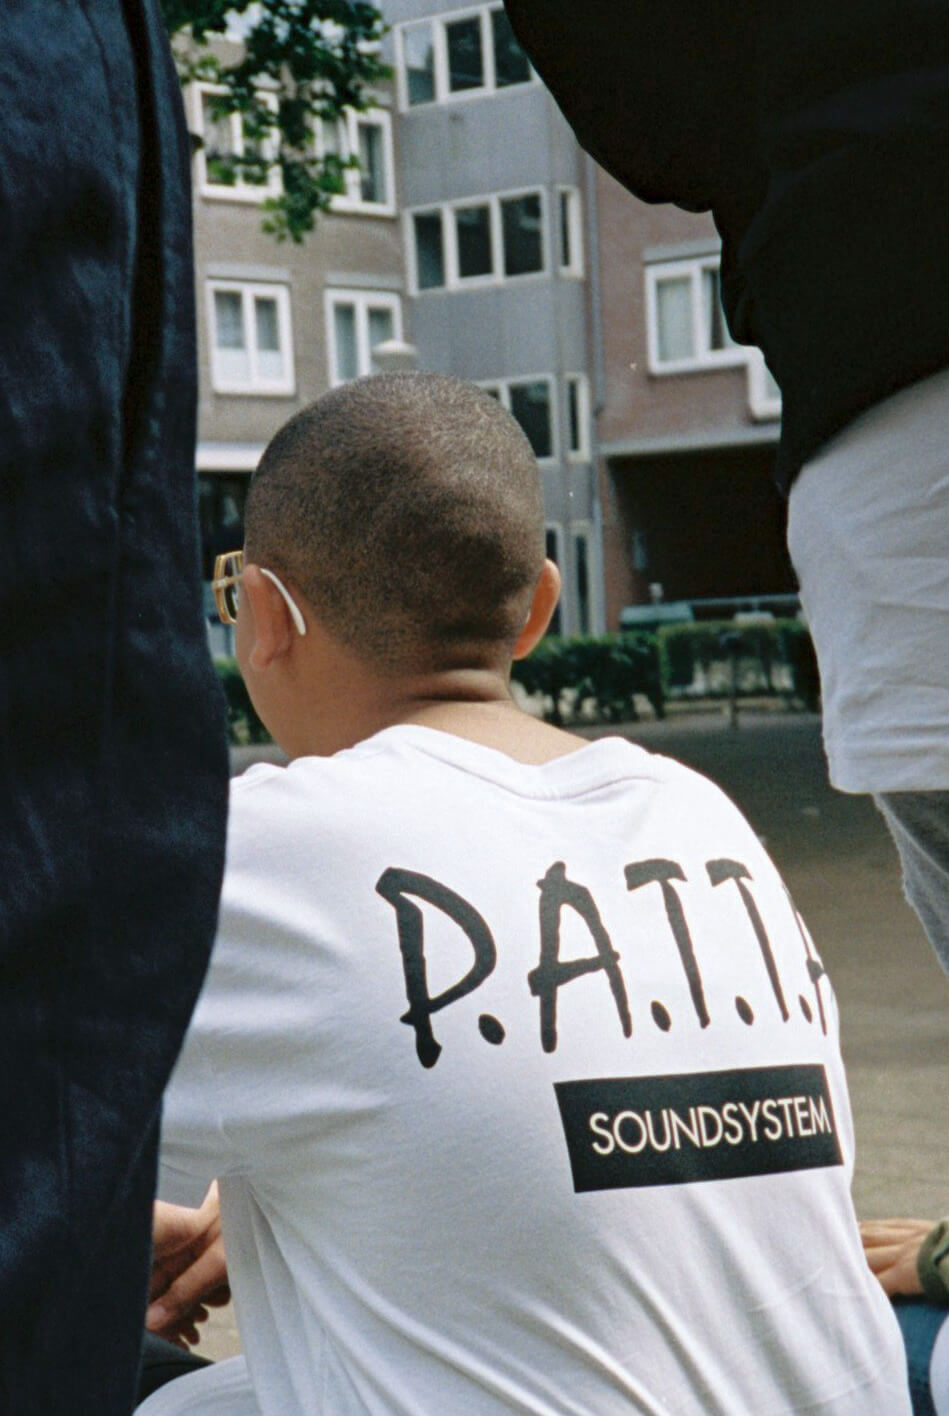 Watch the Sound de Patta